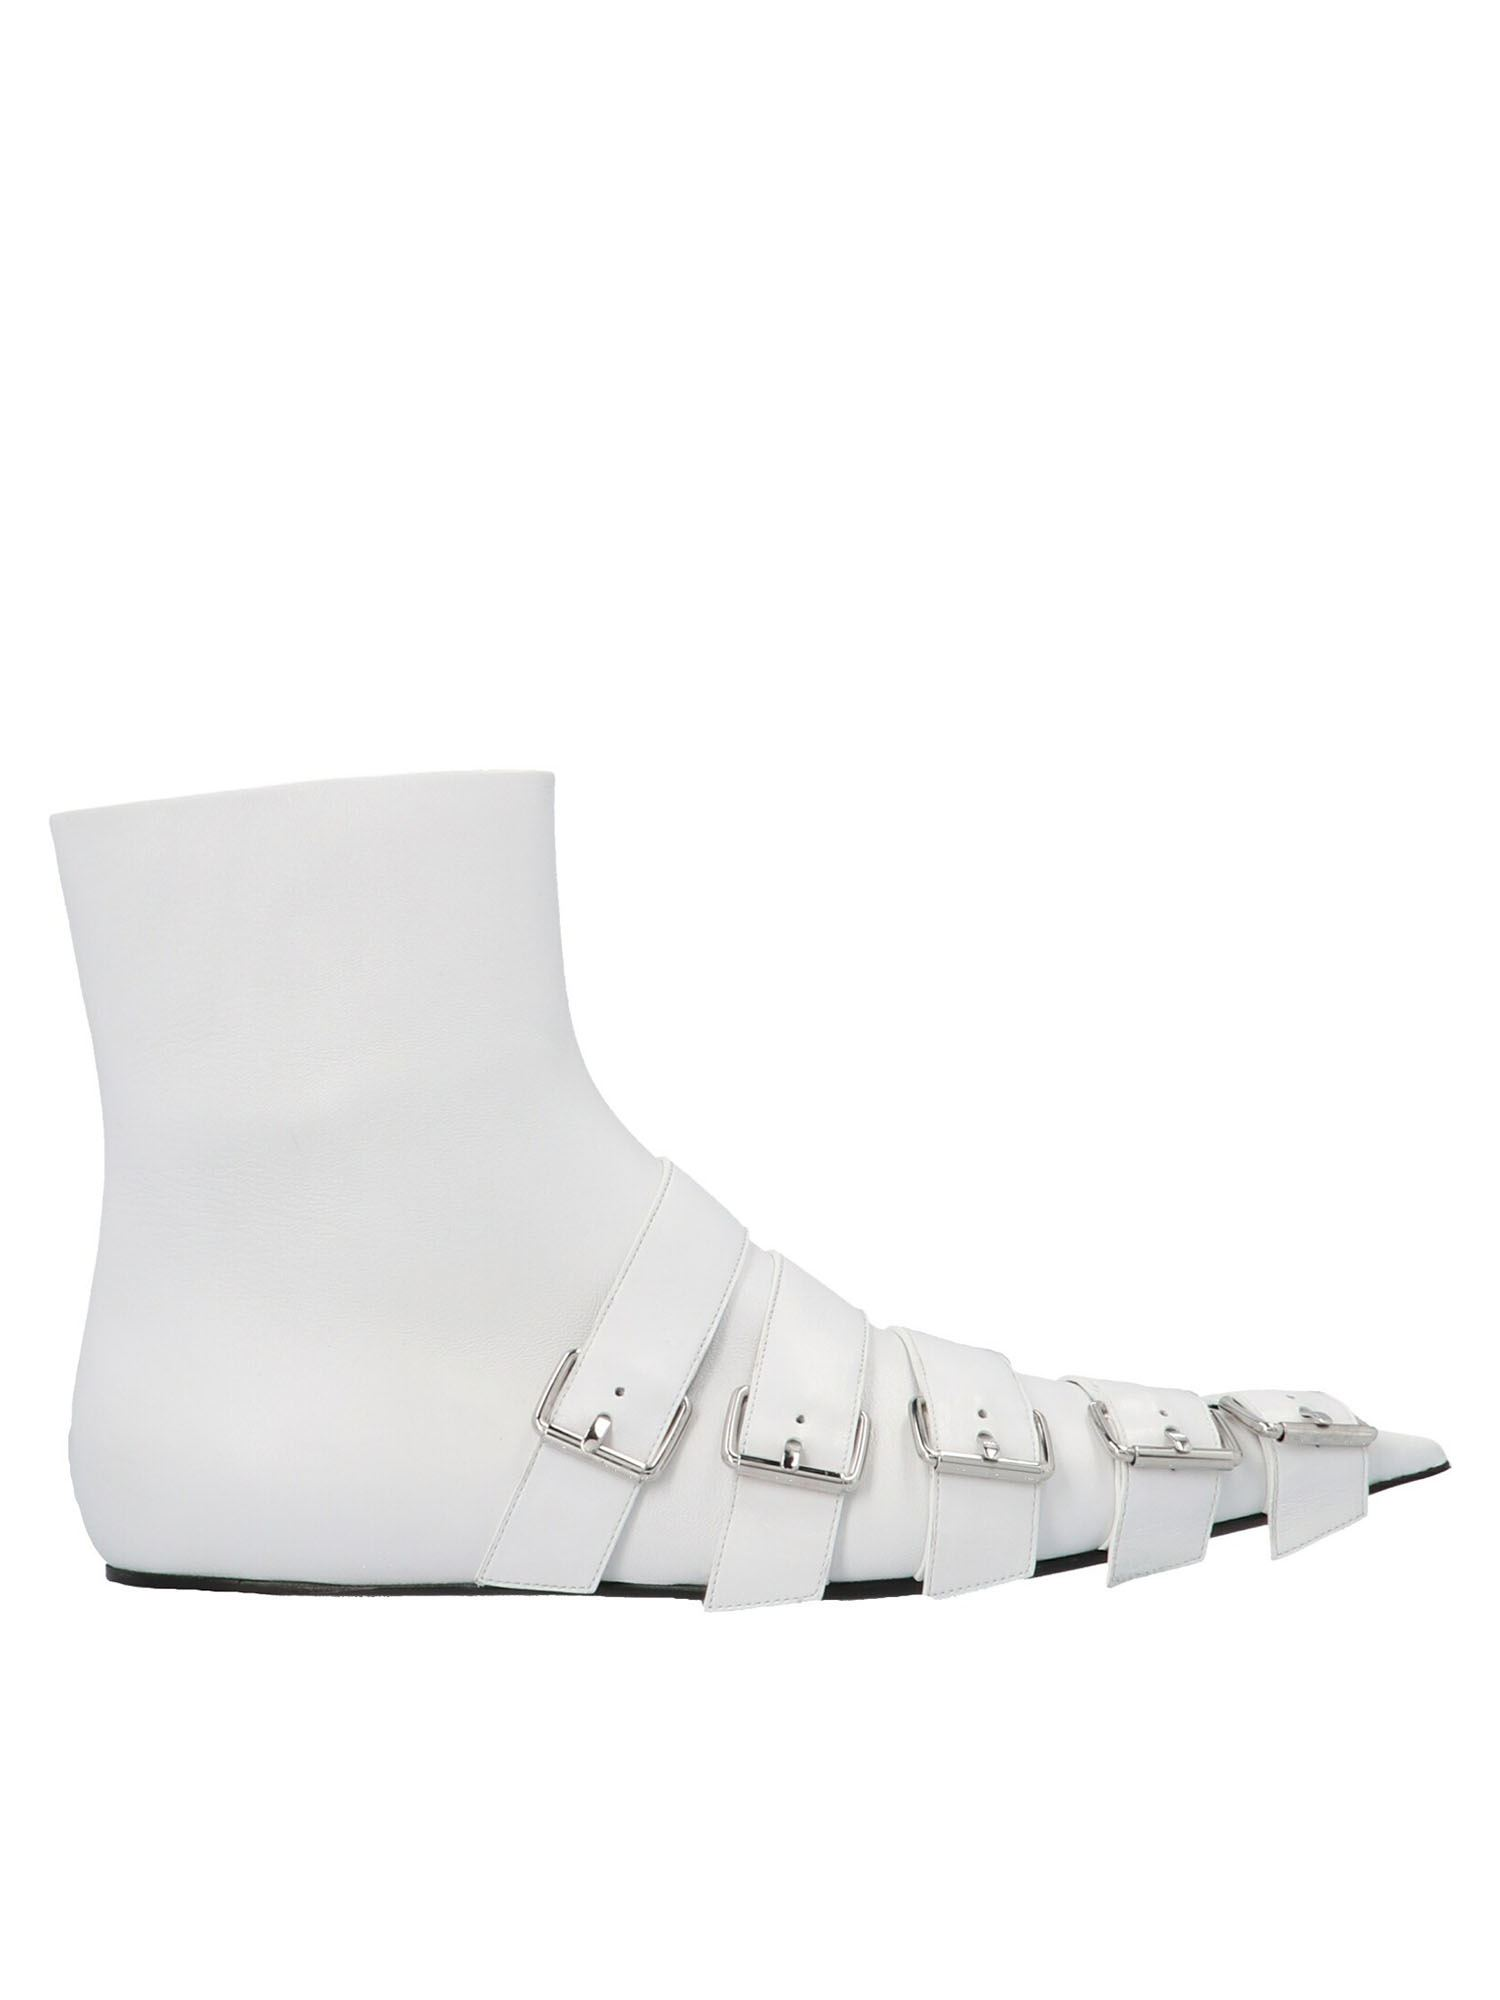 Balenciaga Leathers STARPS ANKLE BOOTS IN WHITE